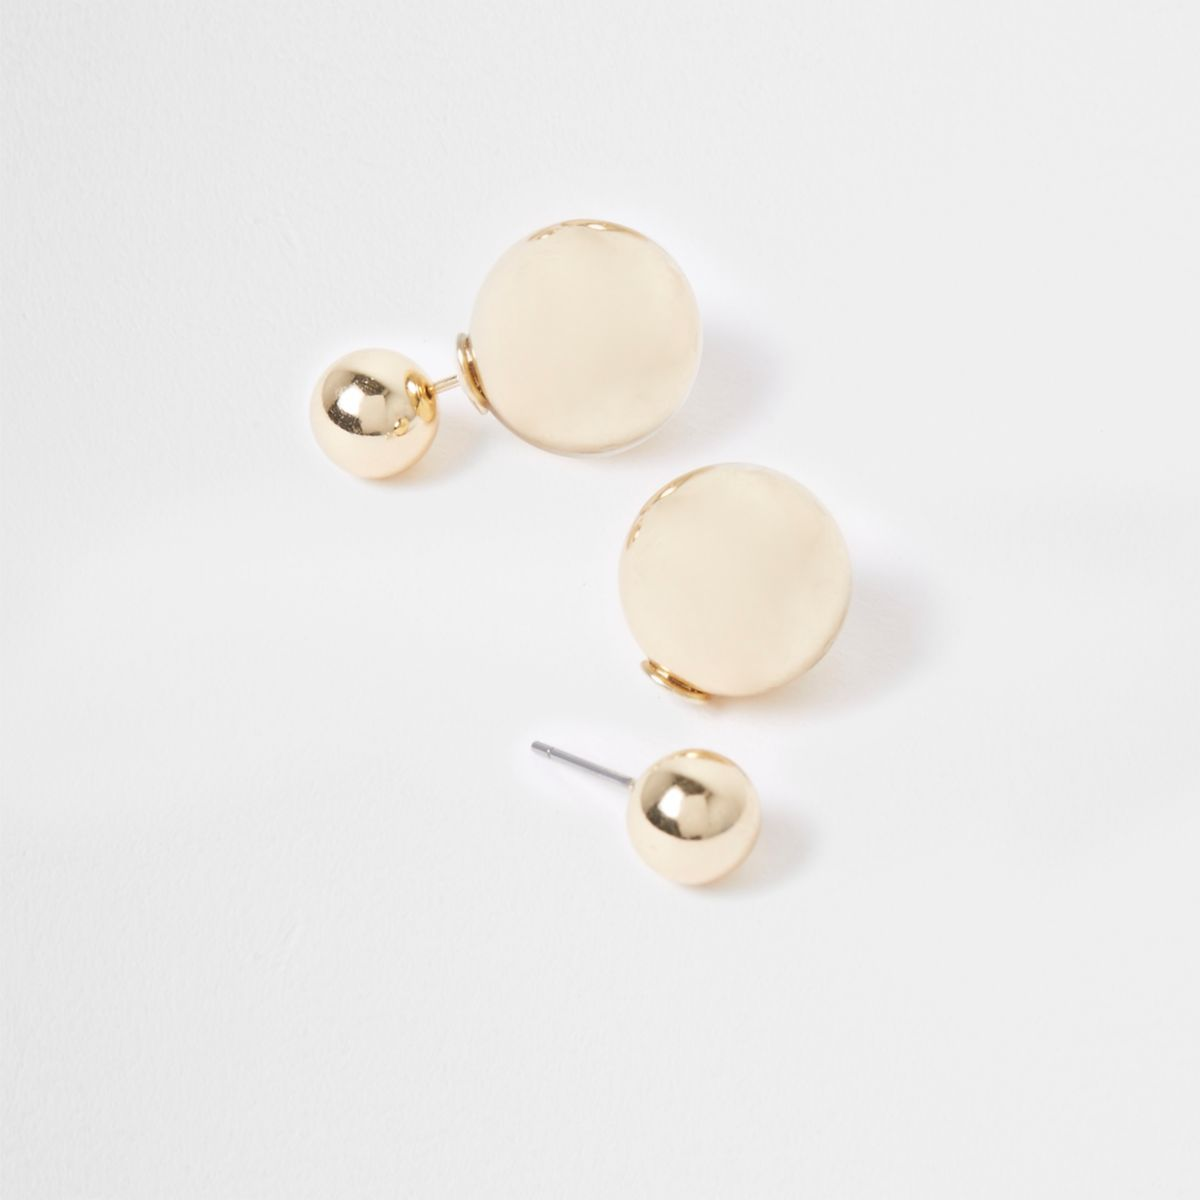 Gold tone ball front and back earrings